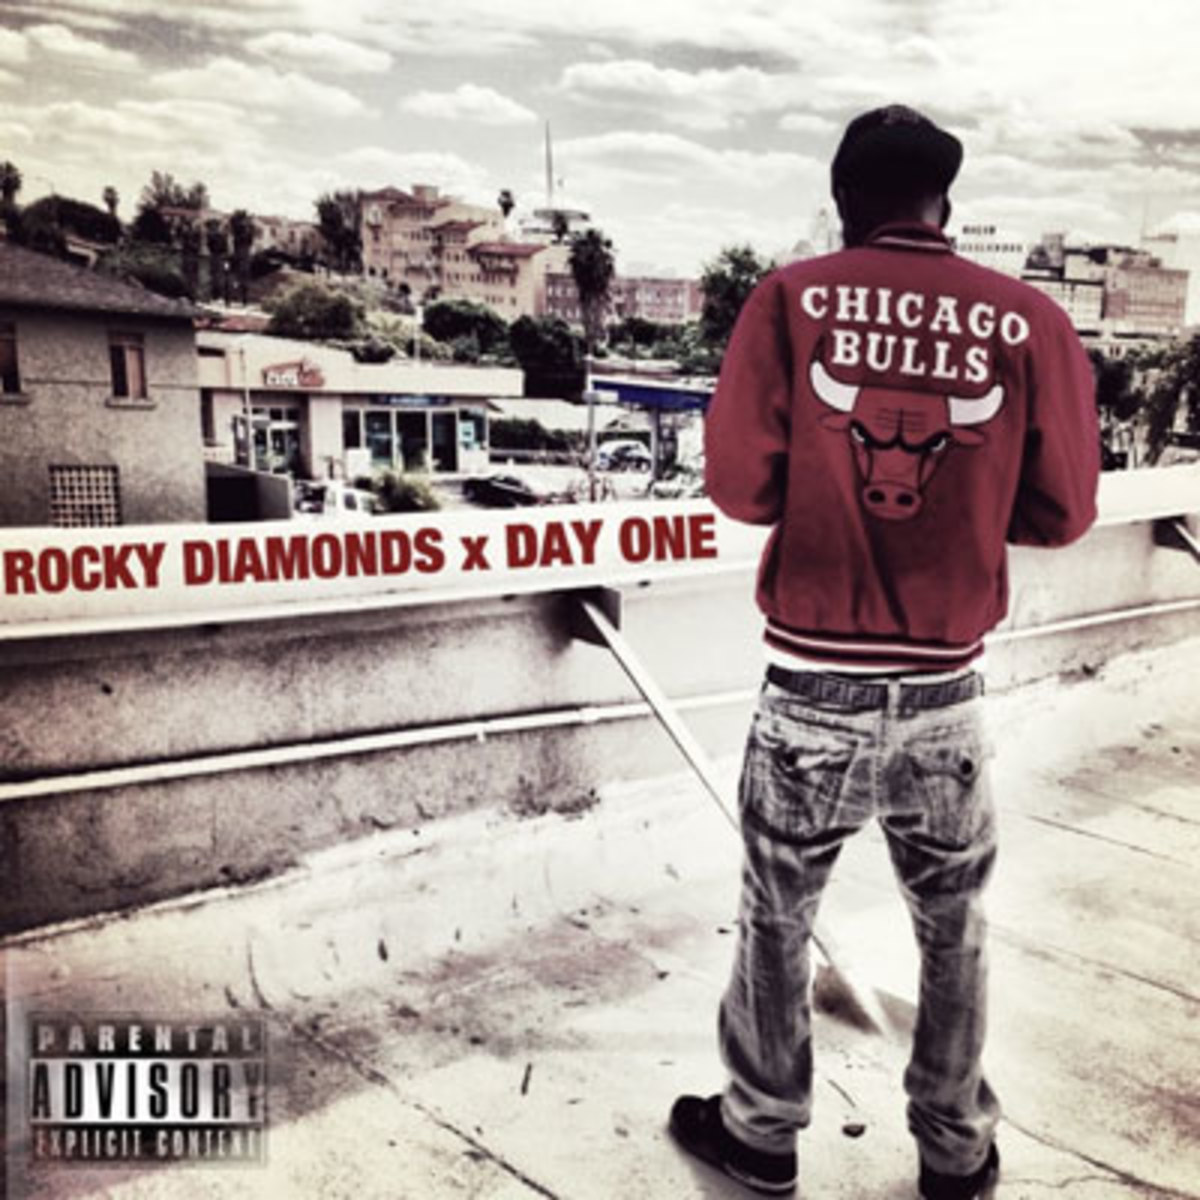 rockydiamonds-dayone.jpg